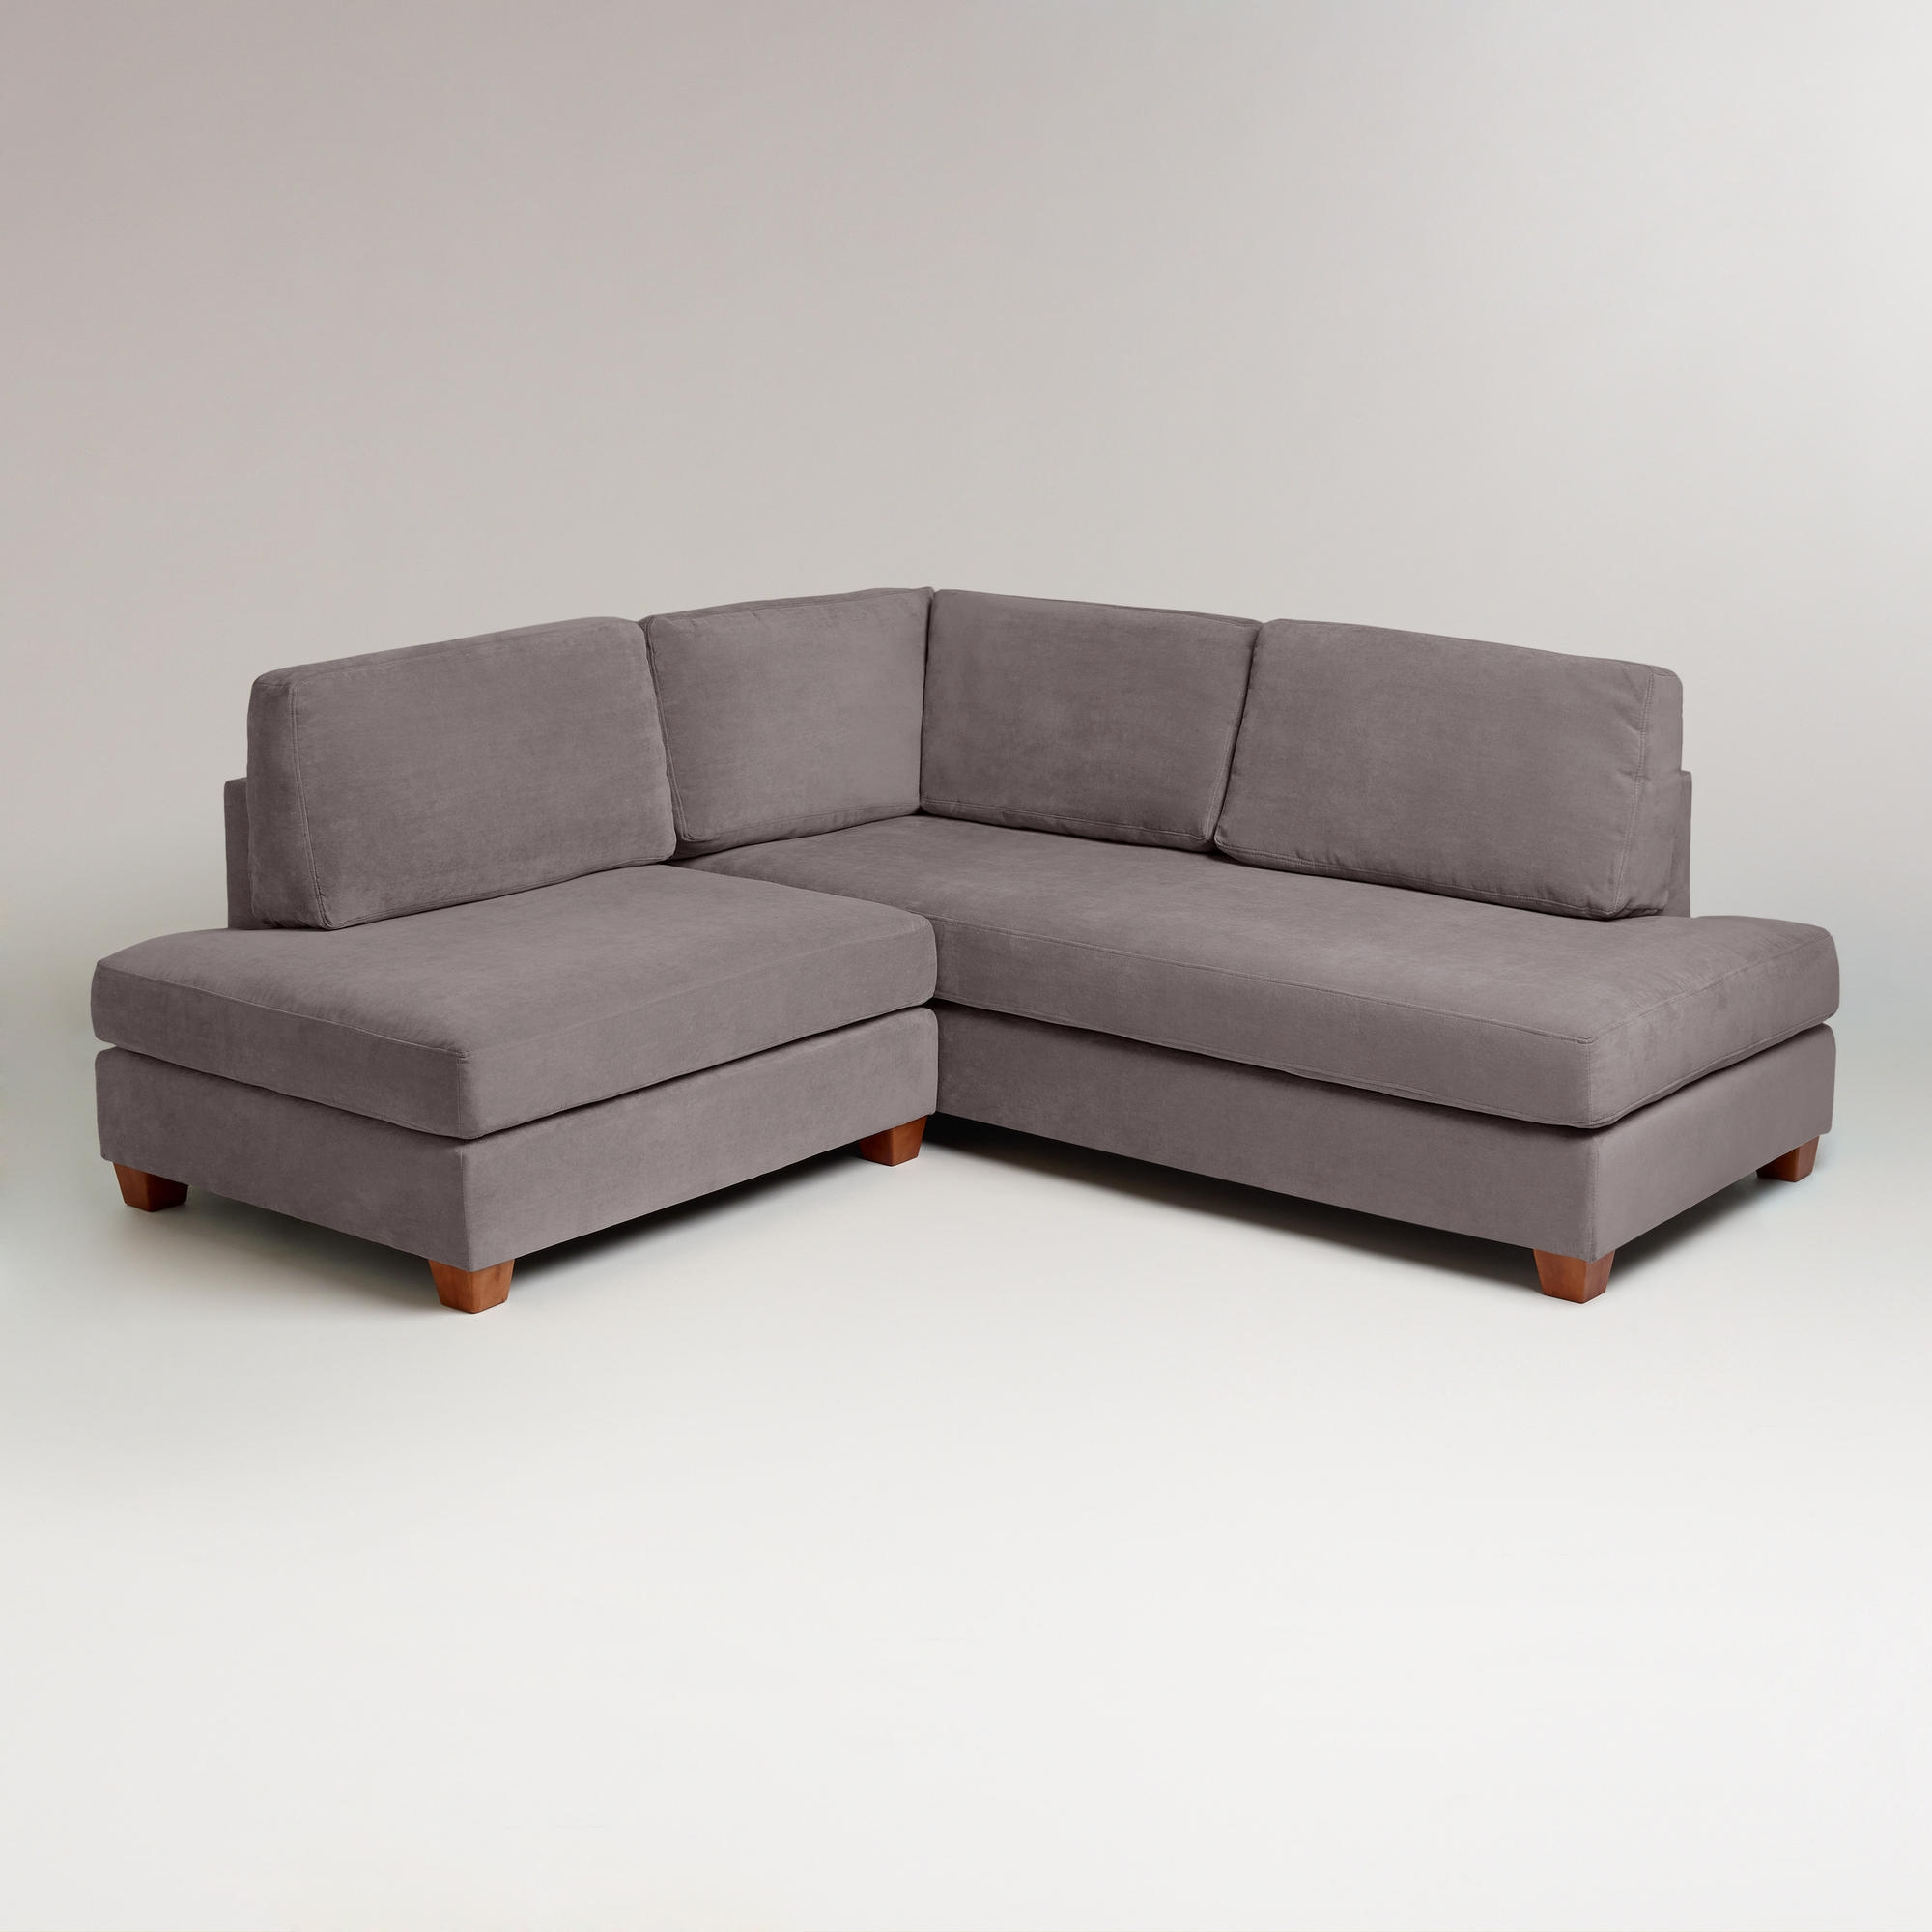 Charcoal Wyatt Sectional Sofa Sectional Sofa With Regard To Apartment Sofa Sectional (Image 10 of 15)